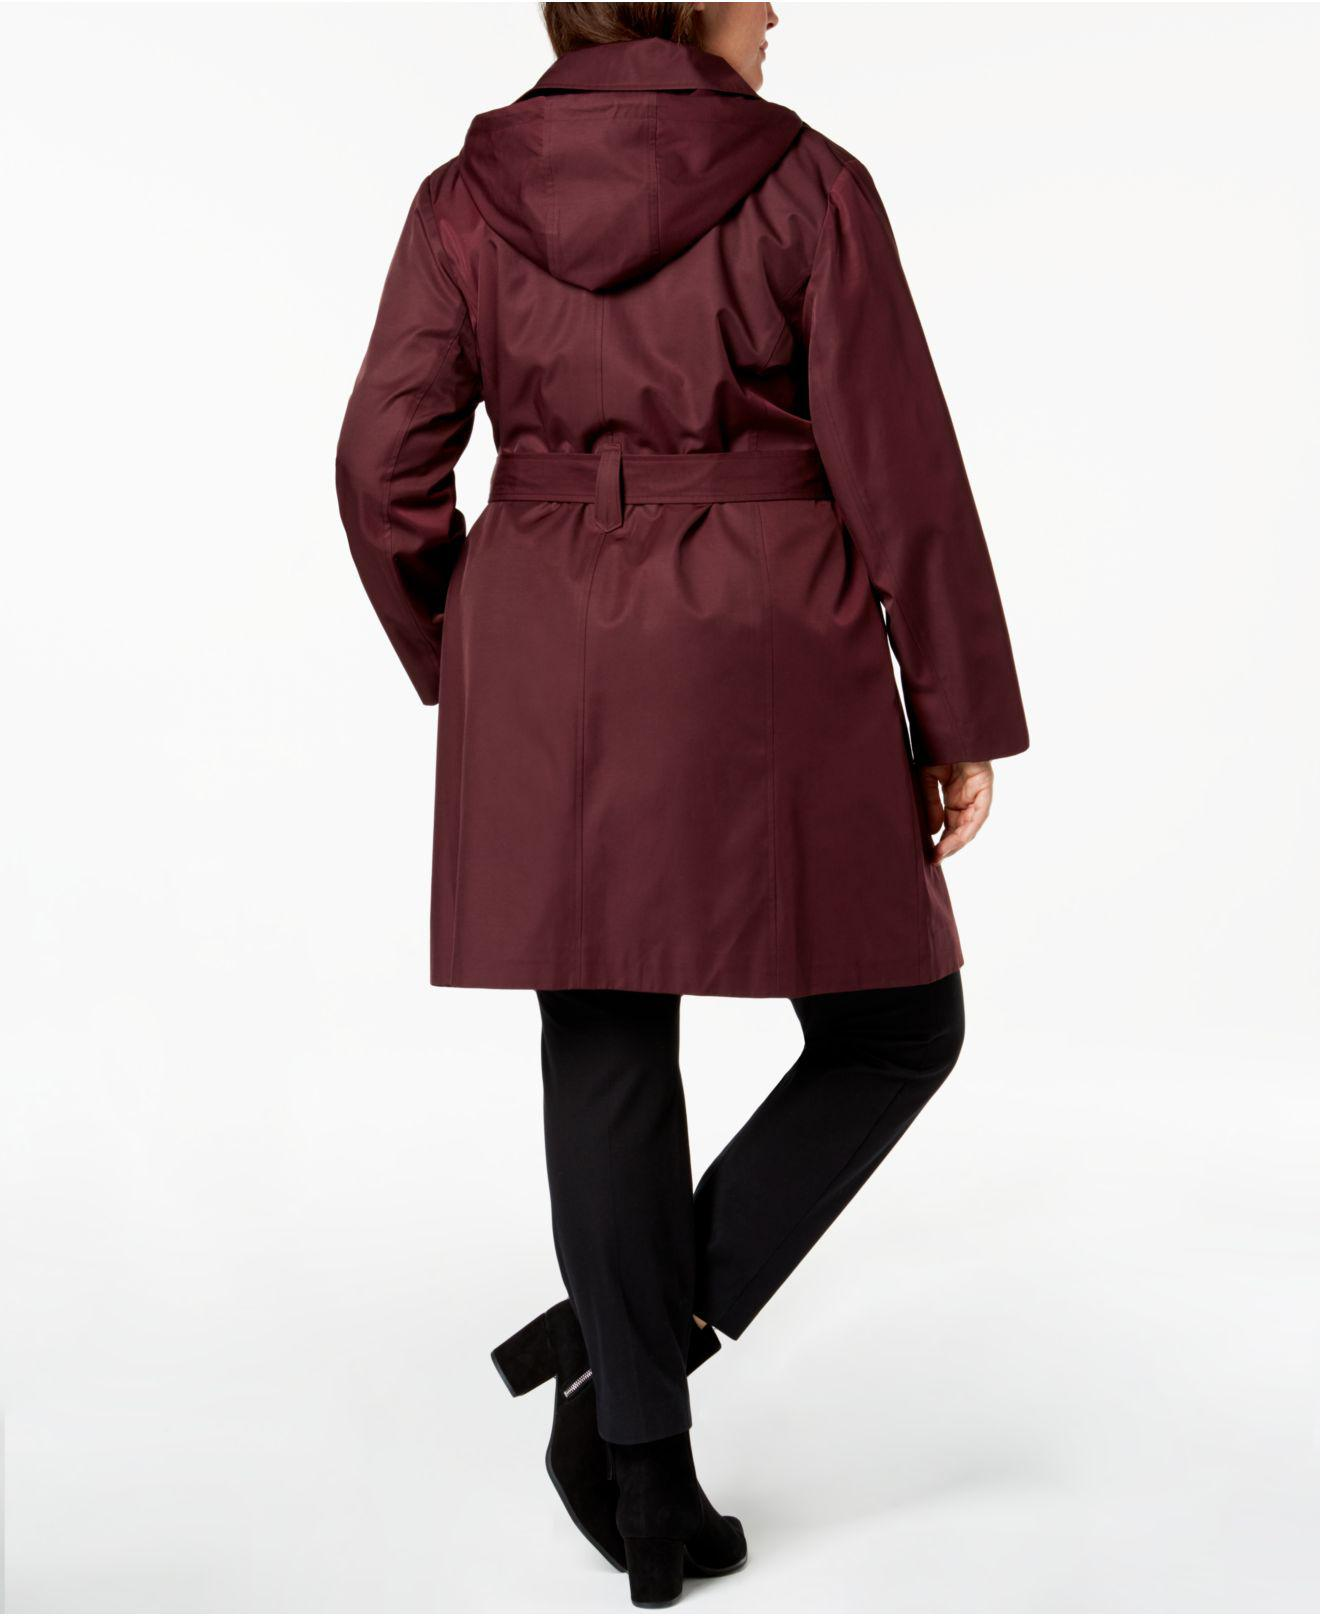 381db0be075 Michael Kors Michael Plus Size Asymmetrical Hooded Trench Coat in Red - Lyst